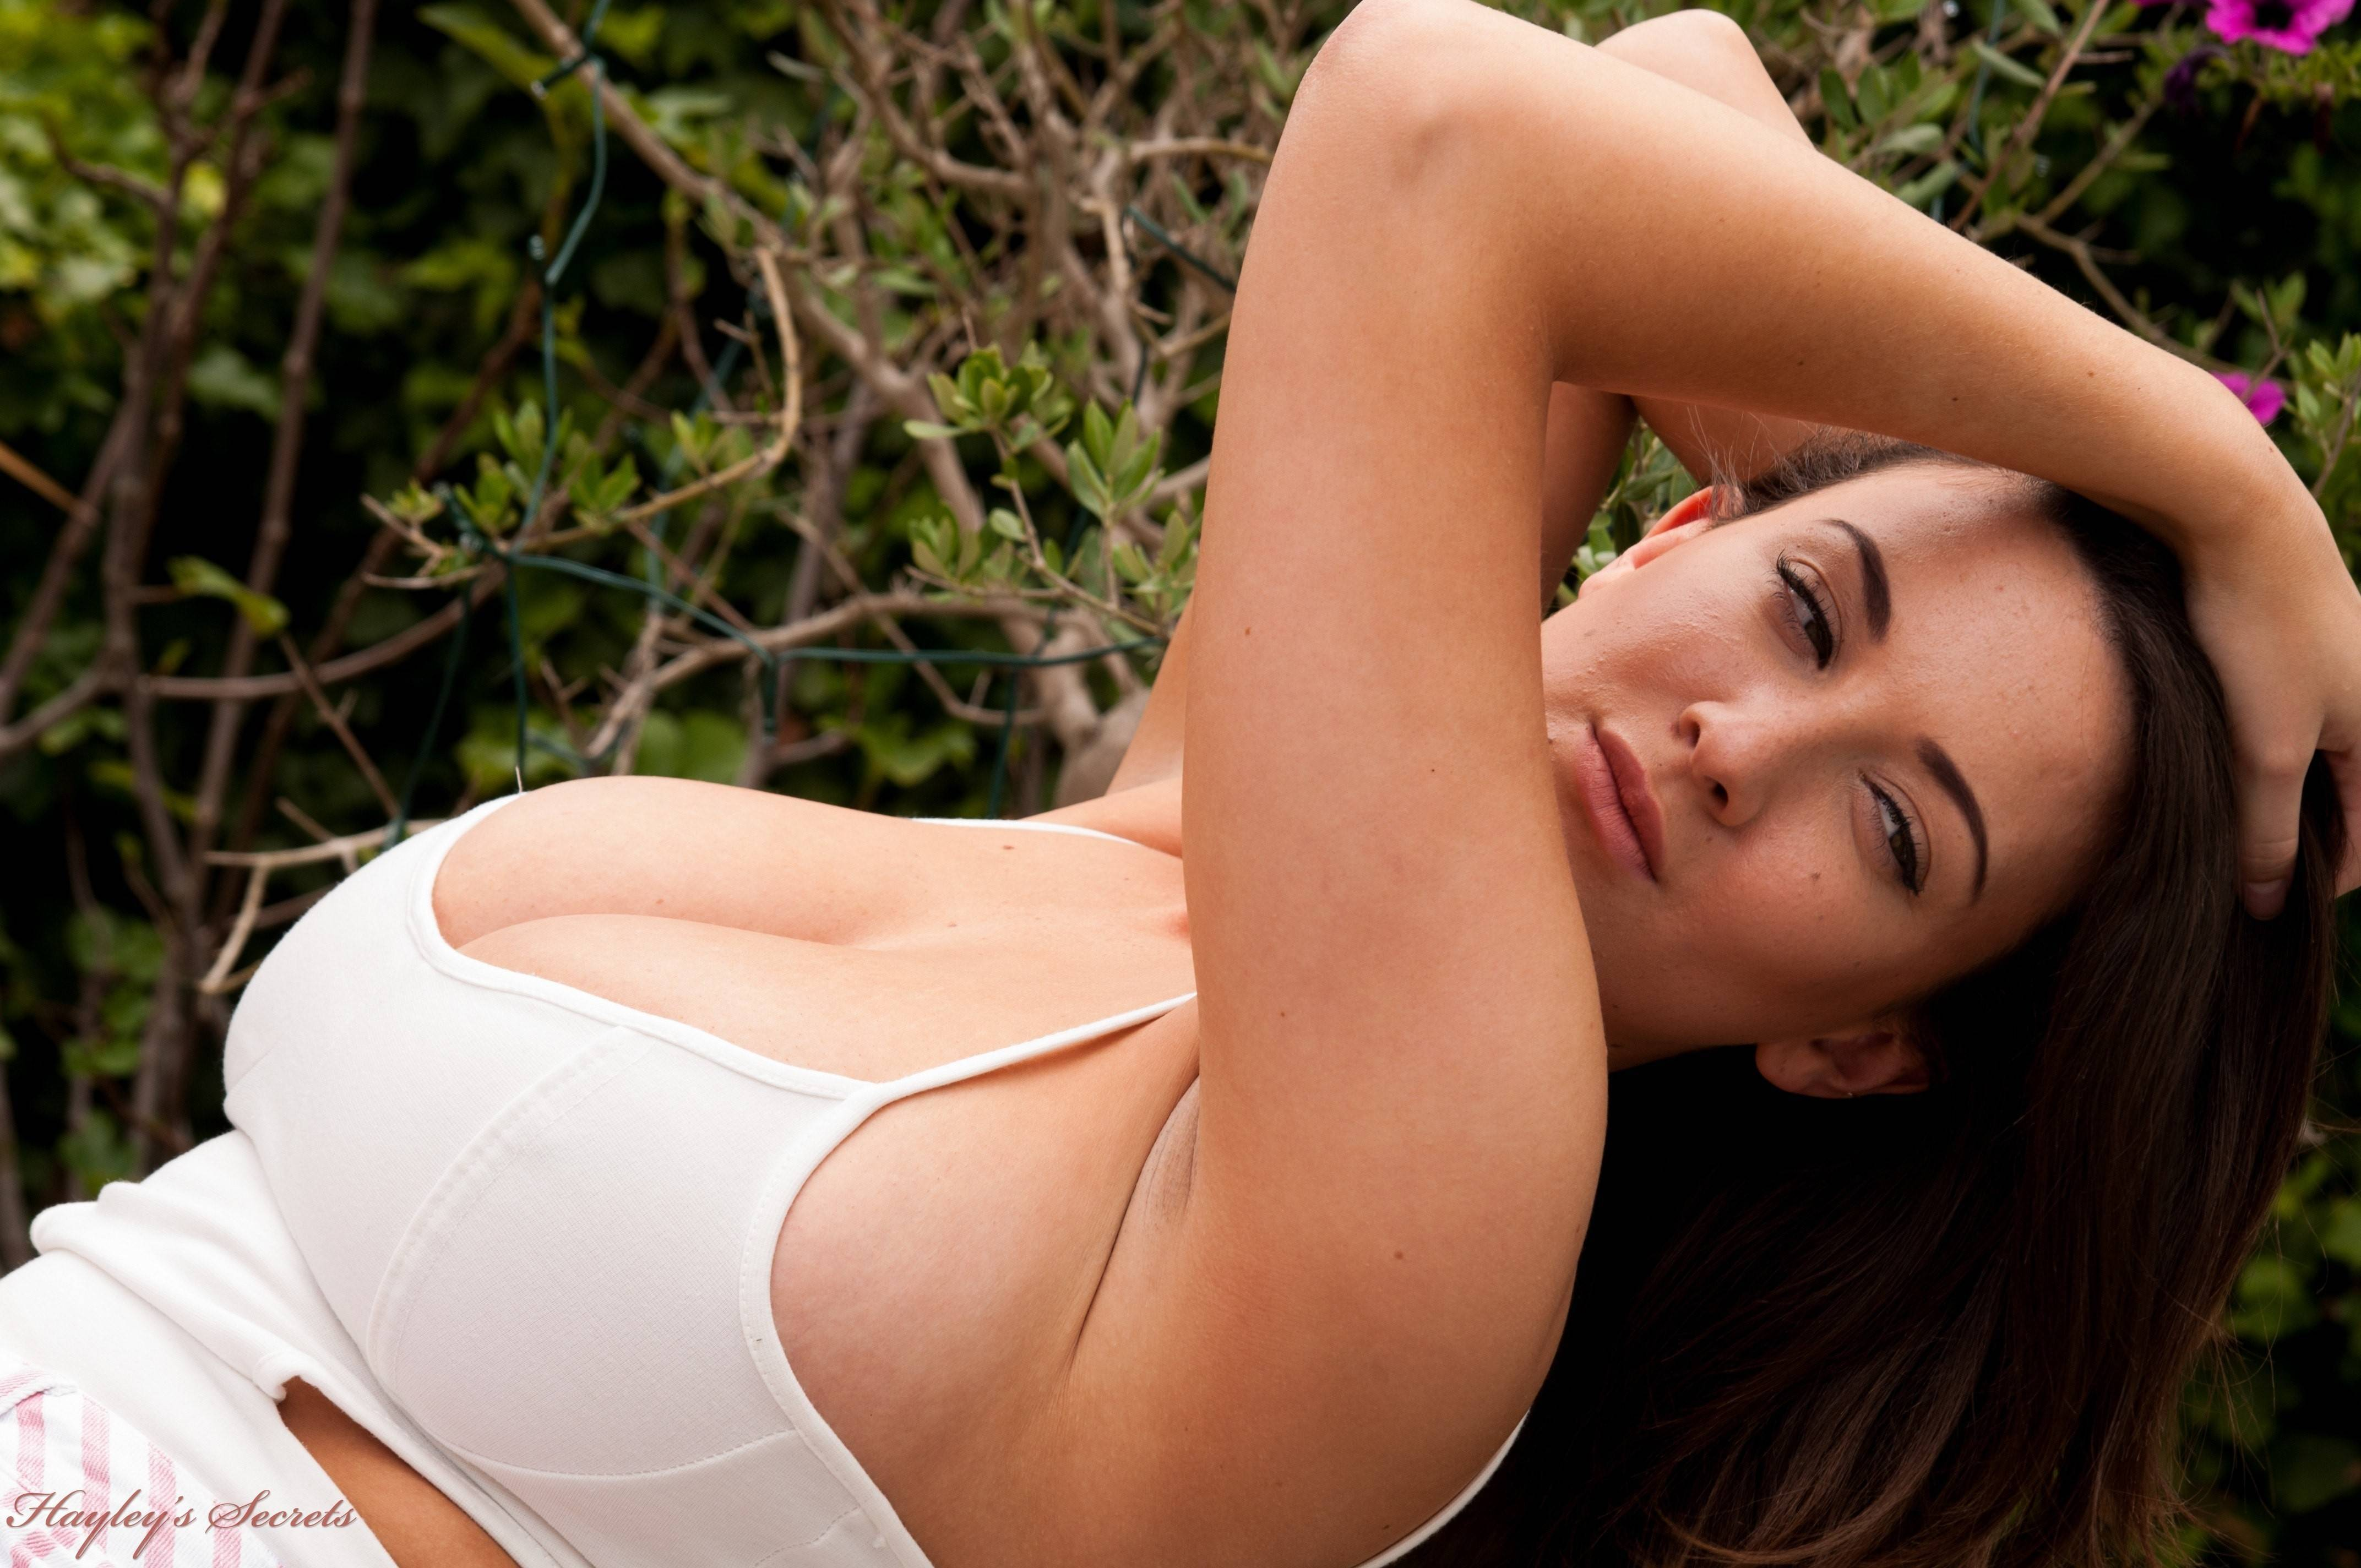 Joey Fisher Wallpapers Hd